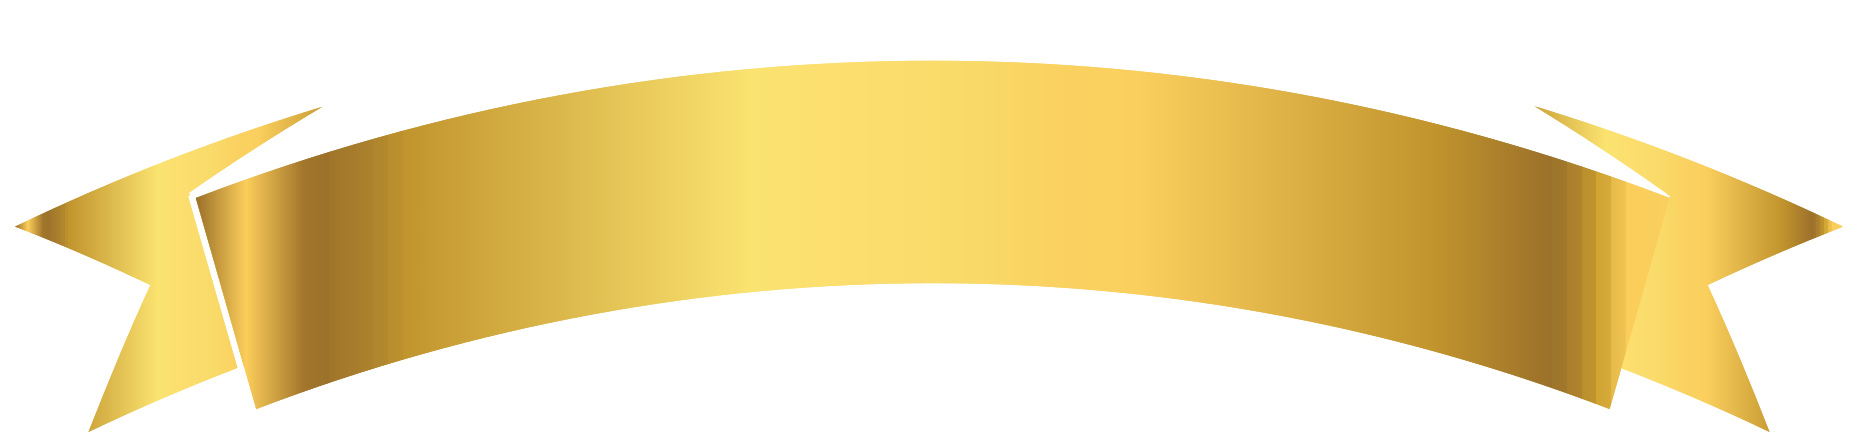 ruban d'or png